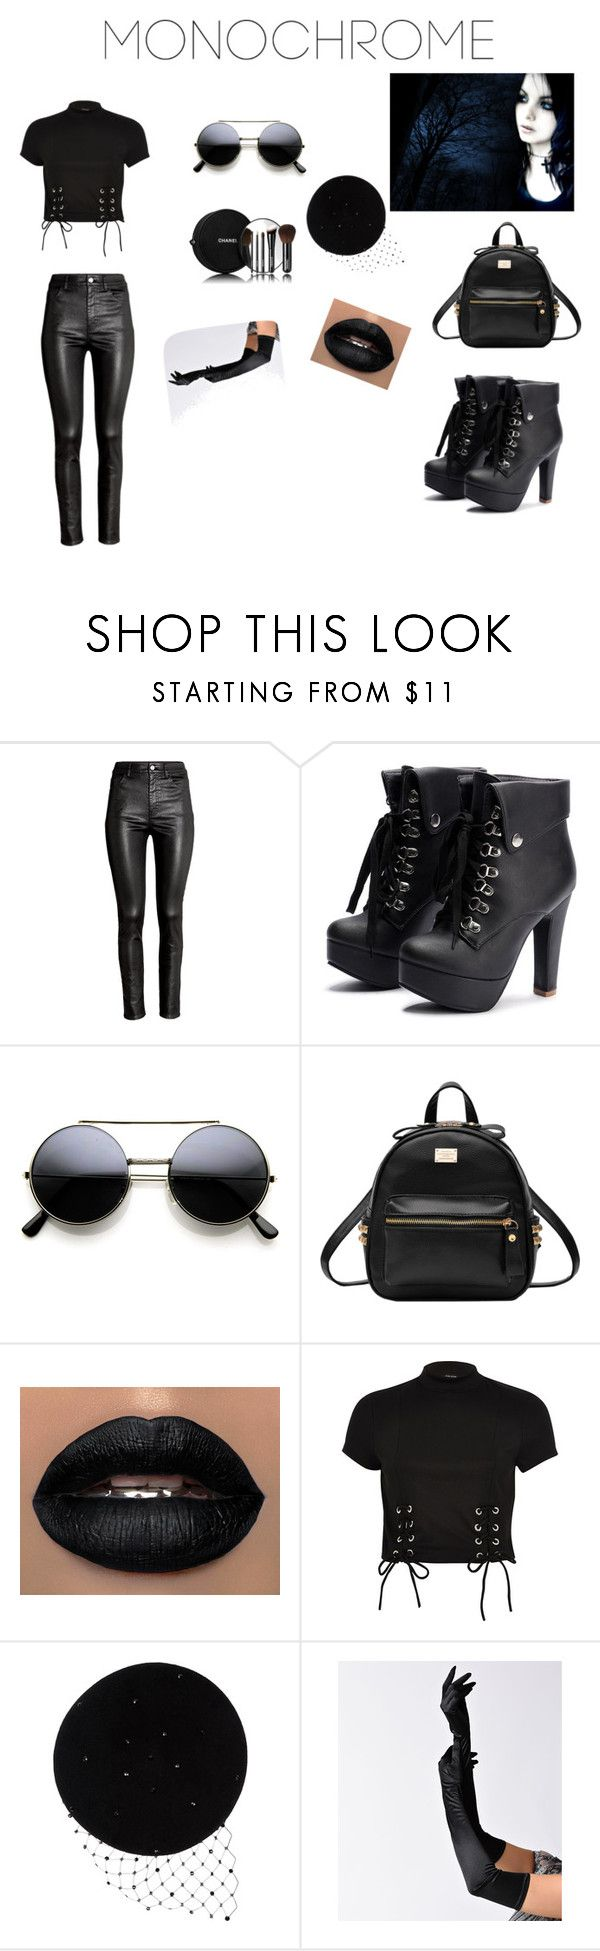 """""""gotik"""" by amra-memic ❤ liked on Polyvore featuring H&M, Chanel, River Island and Victoria Grant"""